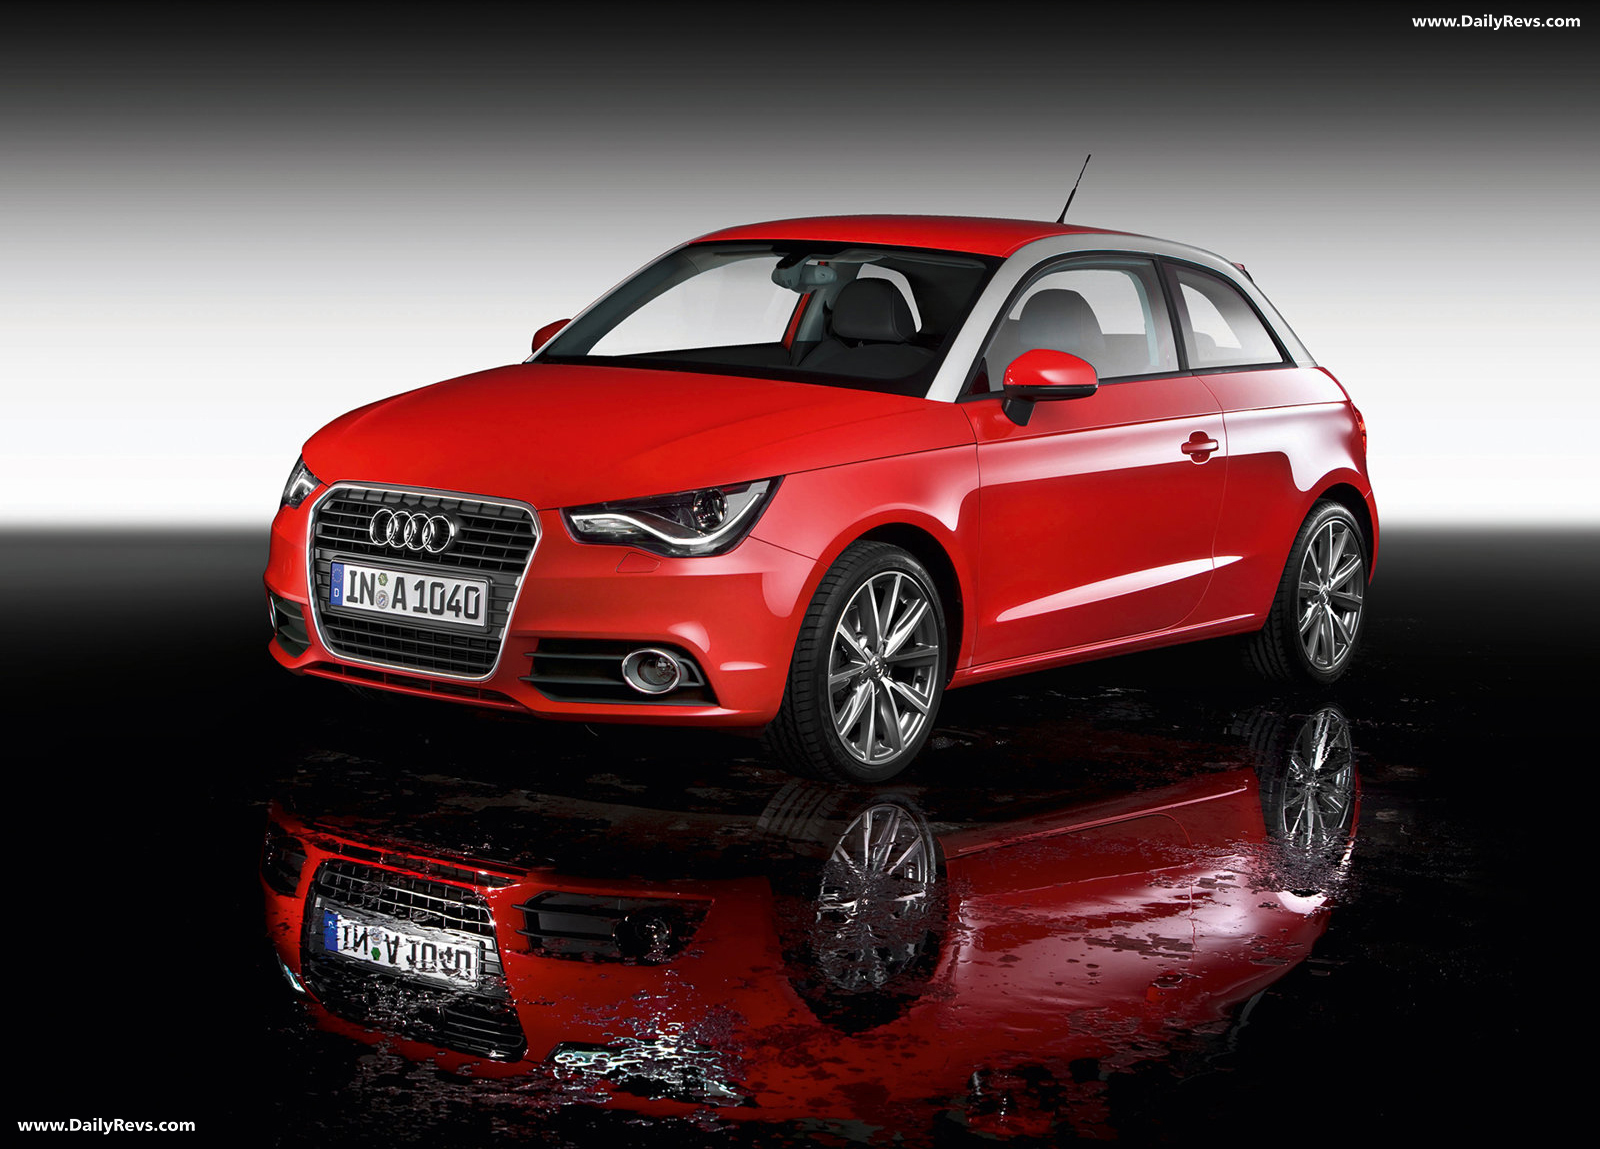 2011 Audi A1 - HD Pictures, Videos, Specs & Informations - Dailyrevs